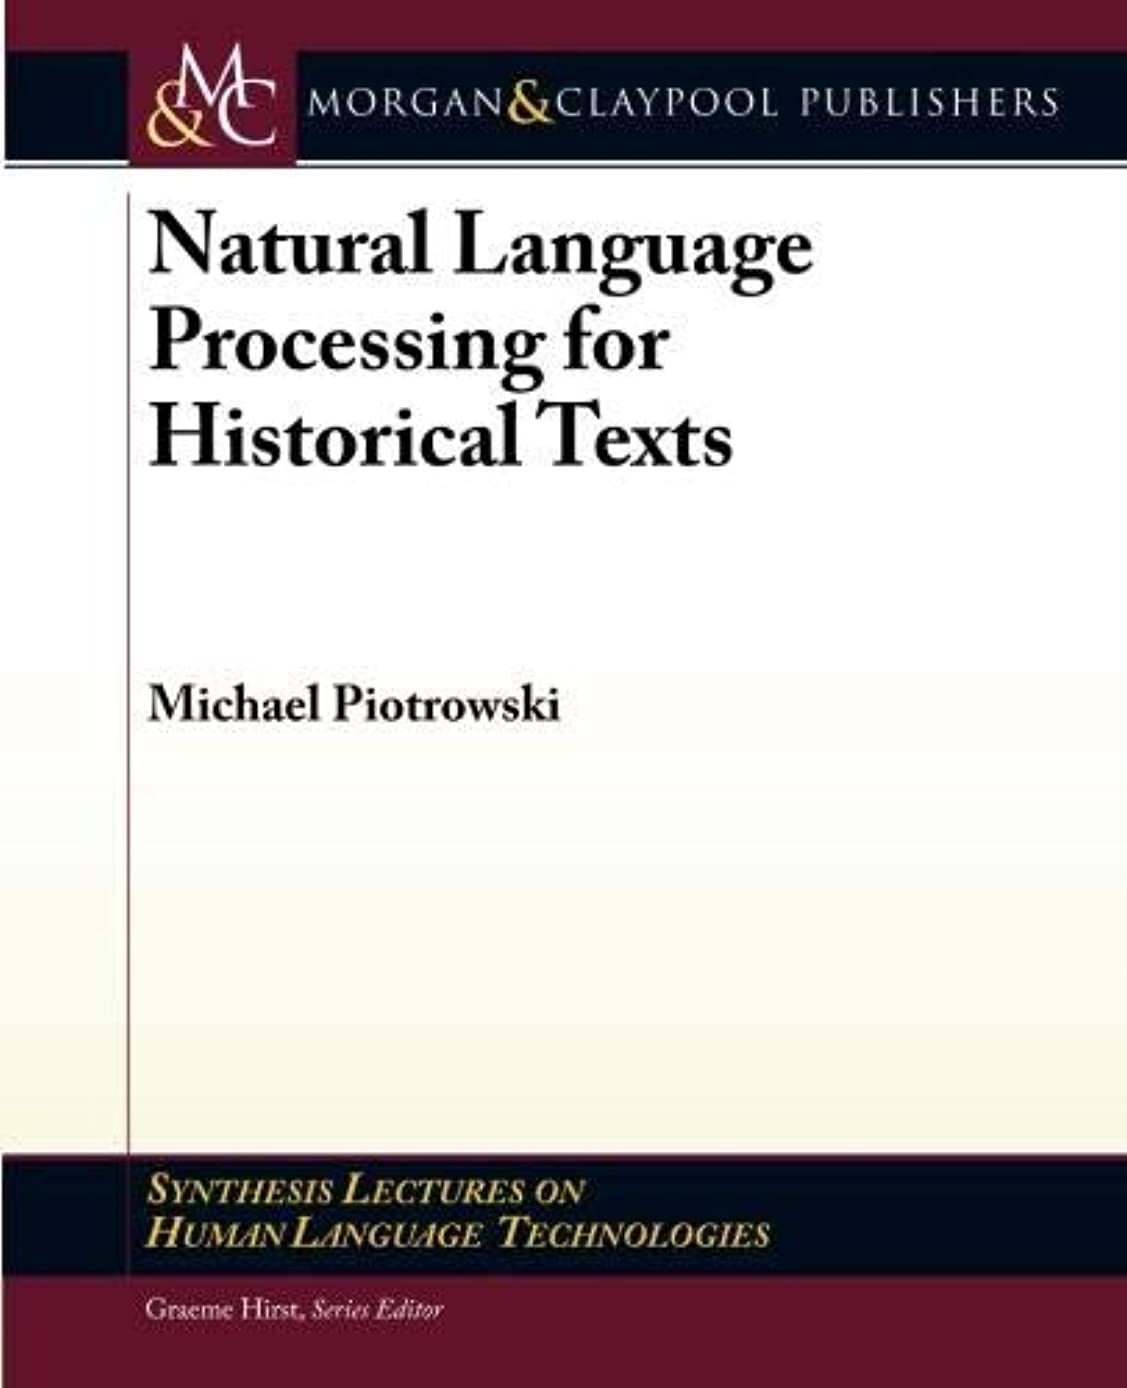 絶壁練習した一時解雇するNatural Language Processing for Historical Texts (Synthesis Lectures on Human Language Technologies)